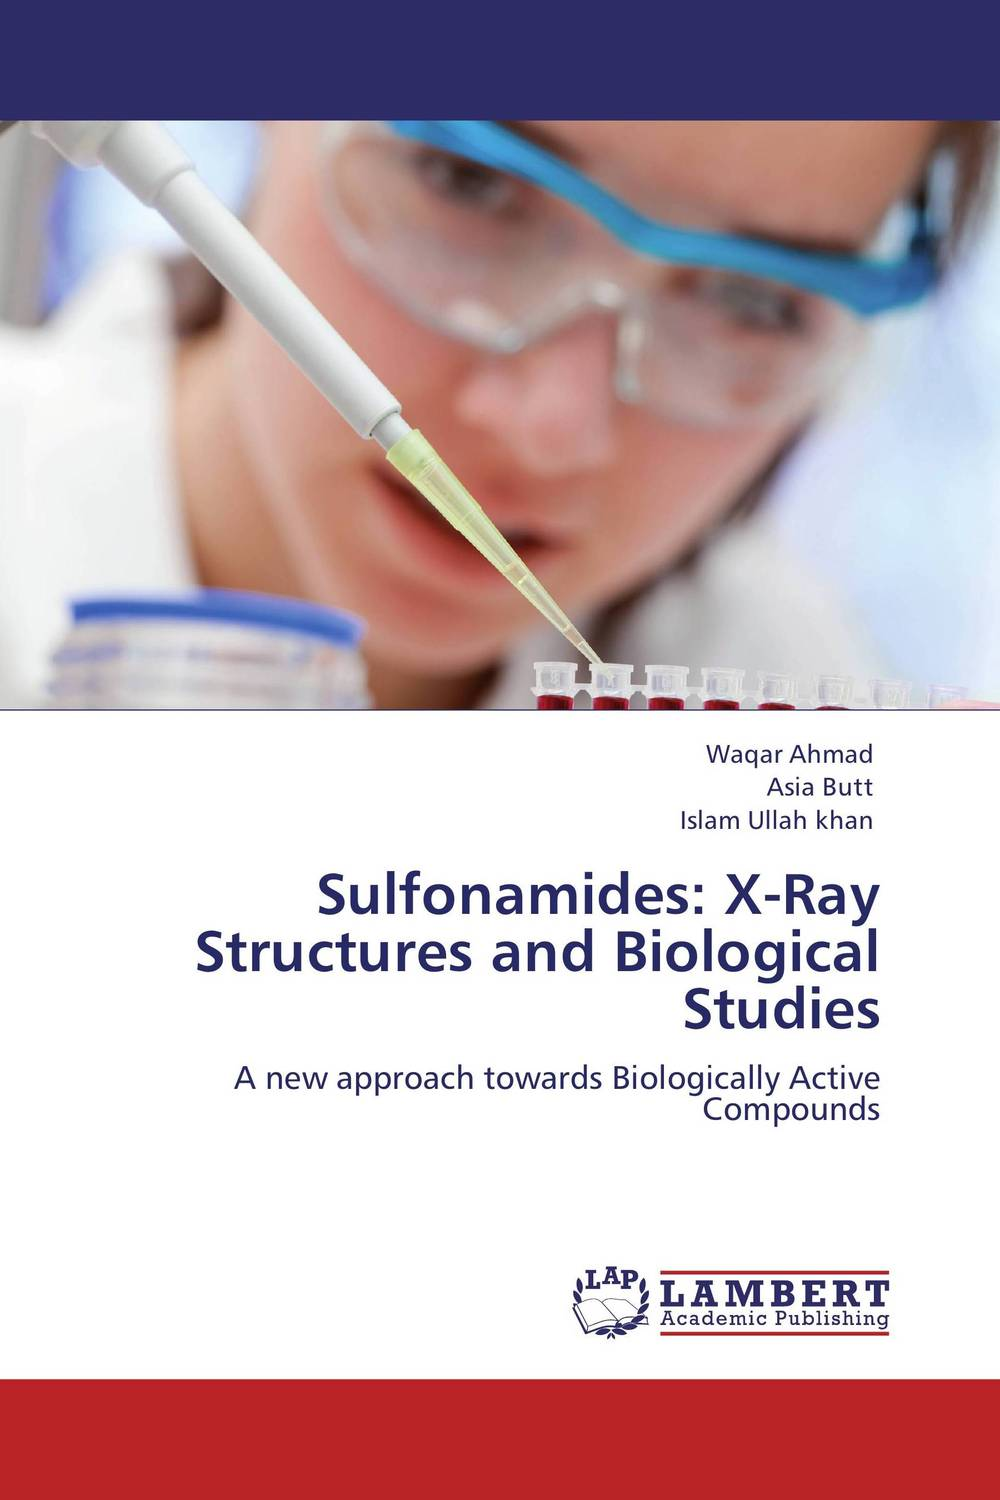 Sulfonamides: X-Ray Structures and Biological Studies ruminant feeds evaluation for microbial biomass synthesis efficiency